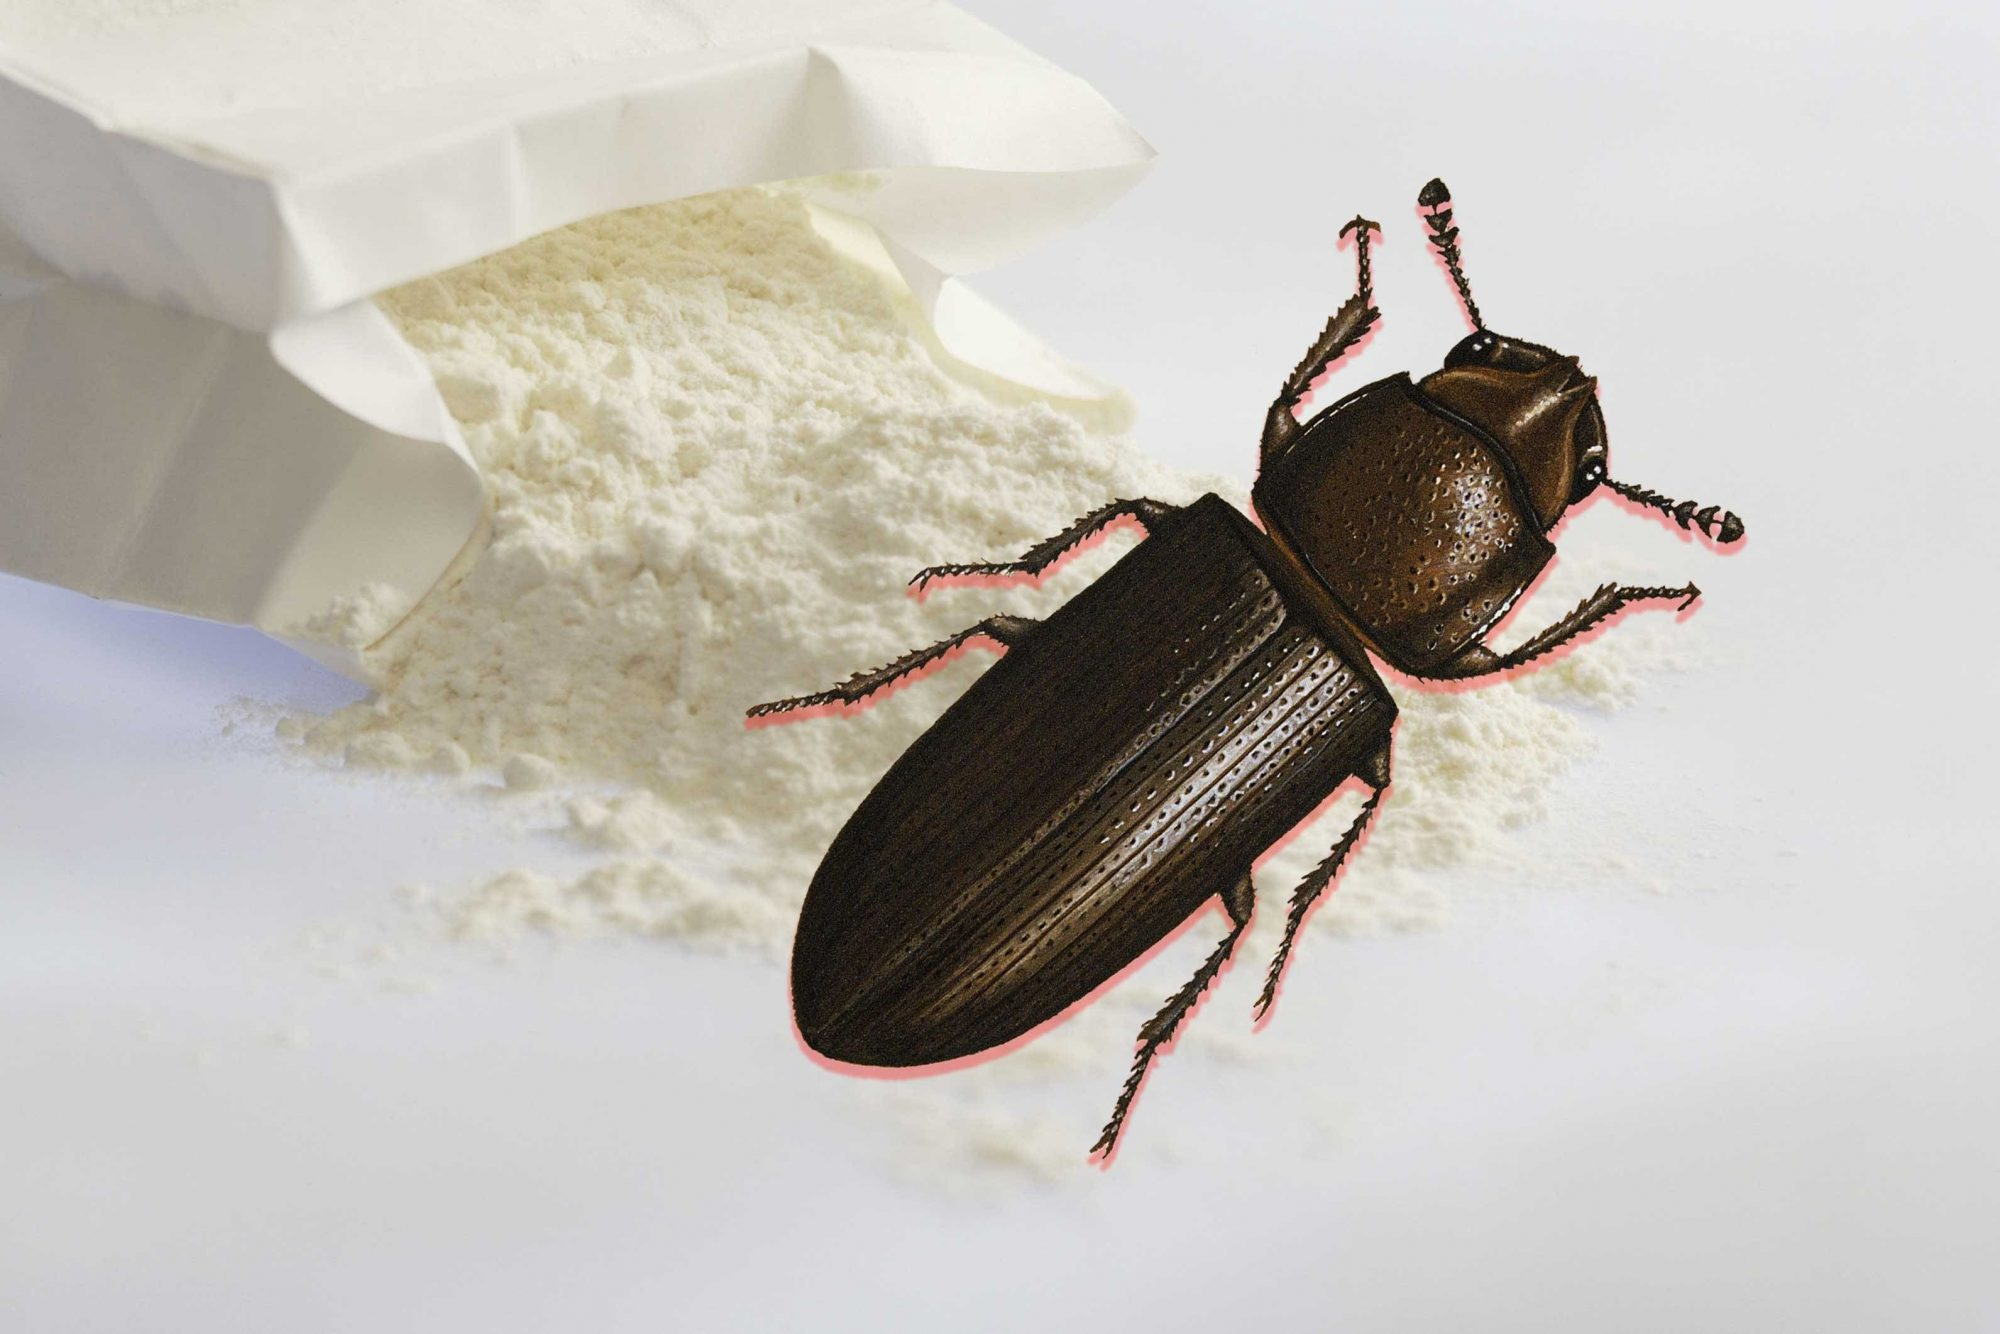 What Are Flour Bugs and Should I Be Worried About Accidentally ...